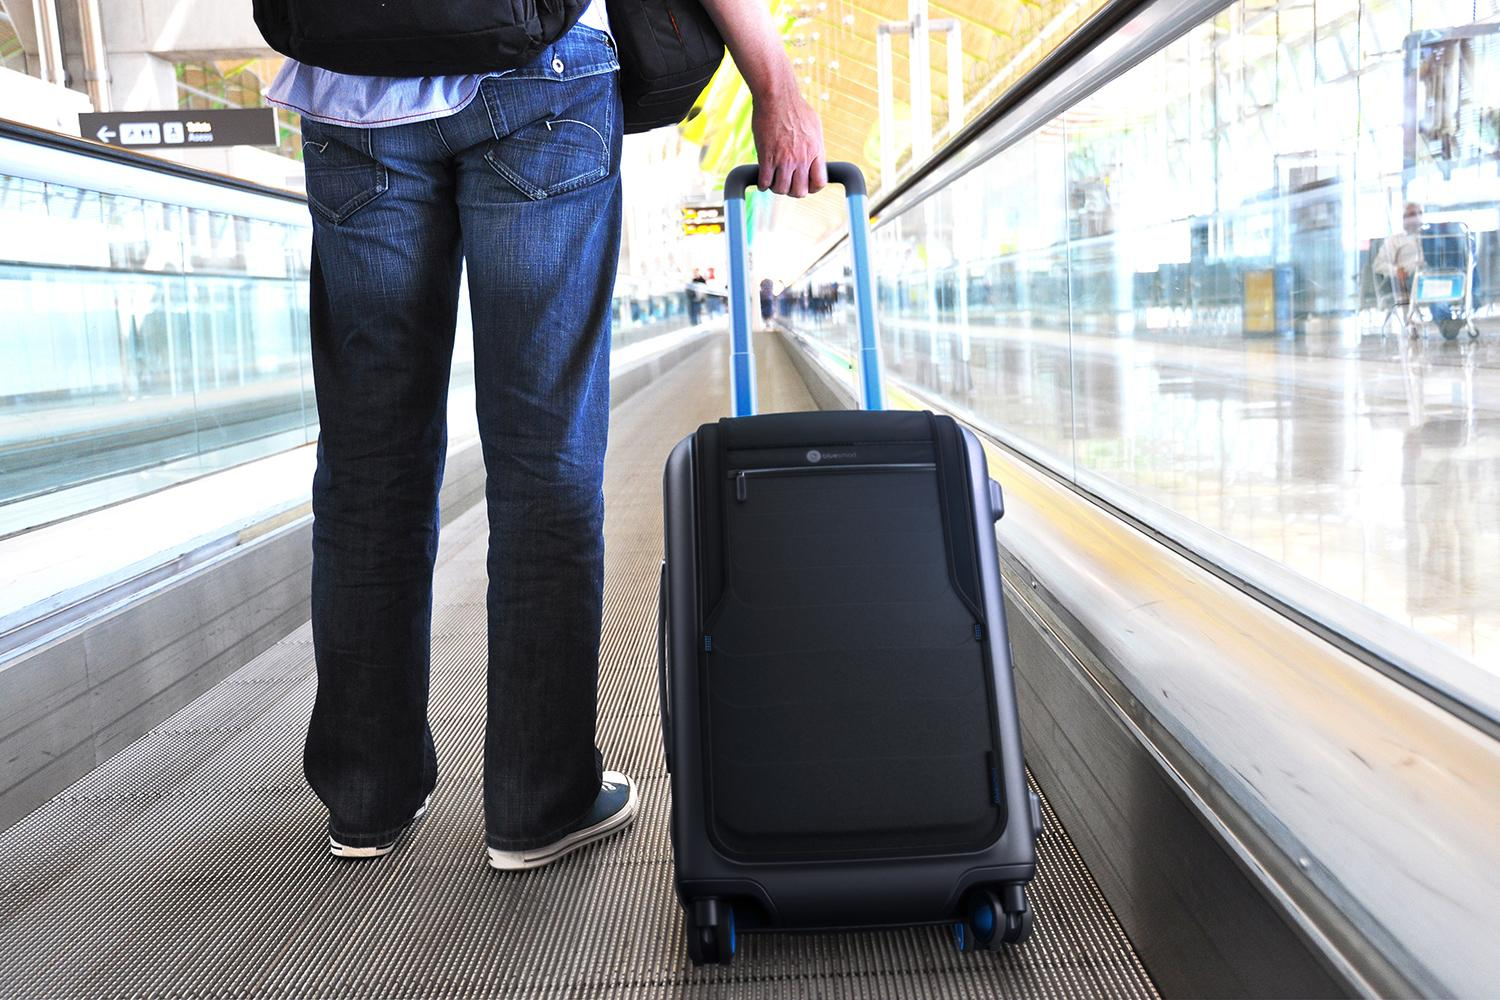 bluesmart-airport-now-boarding-airport